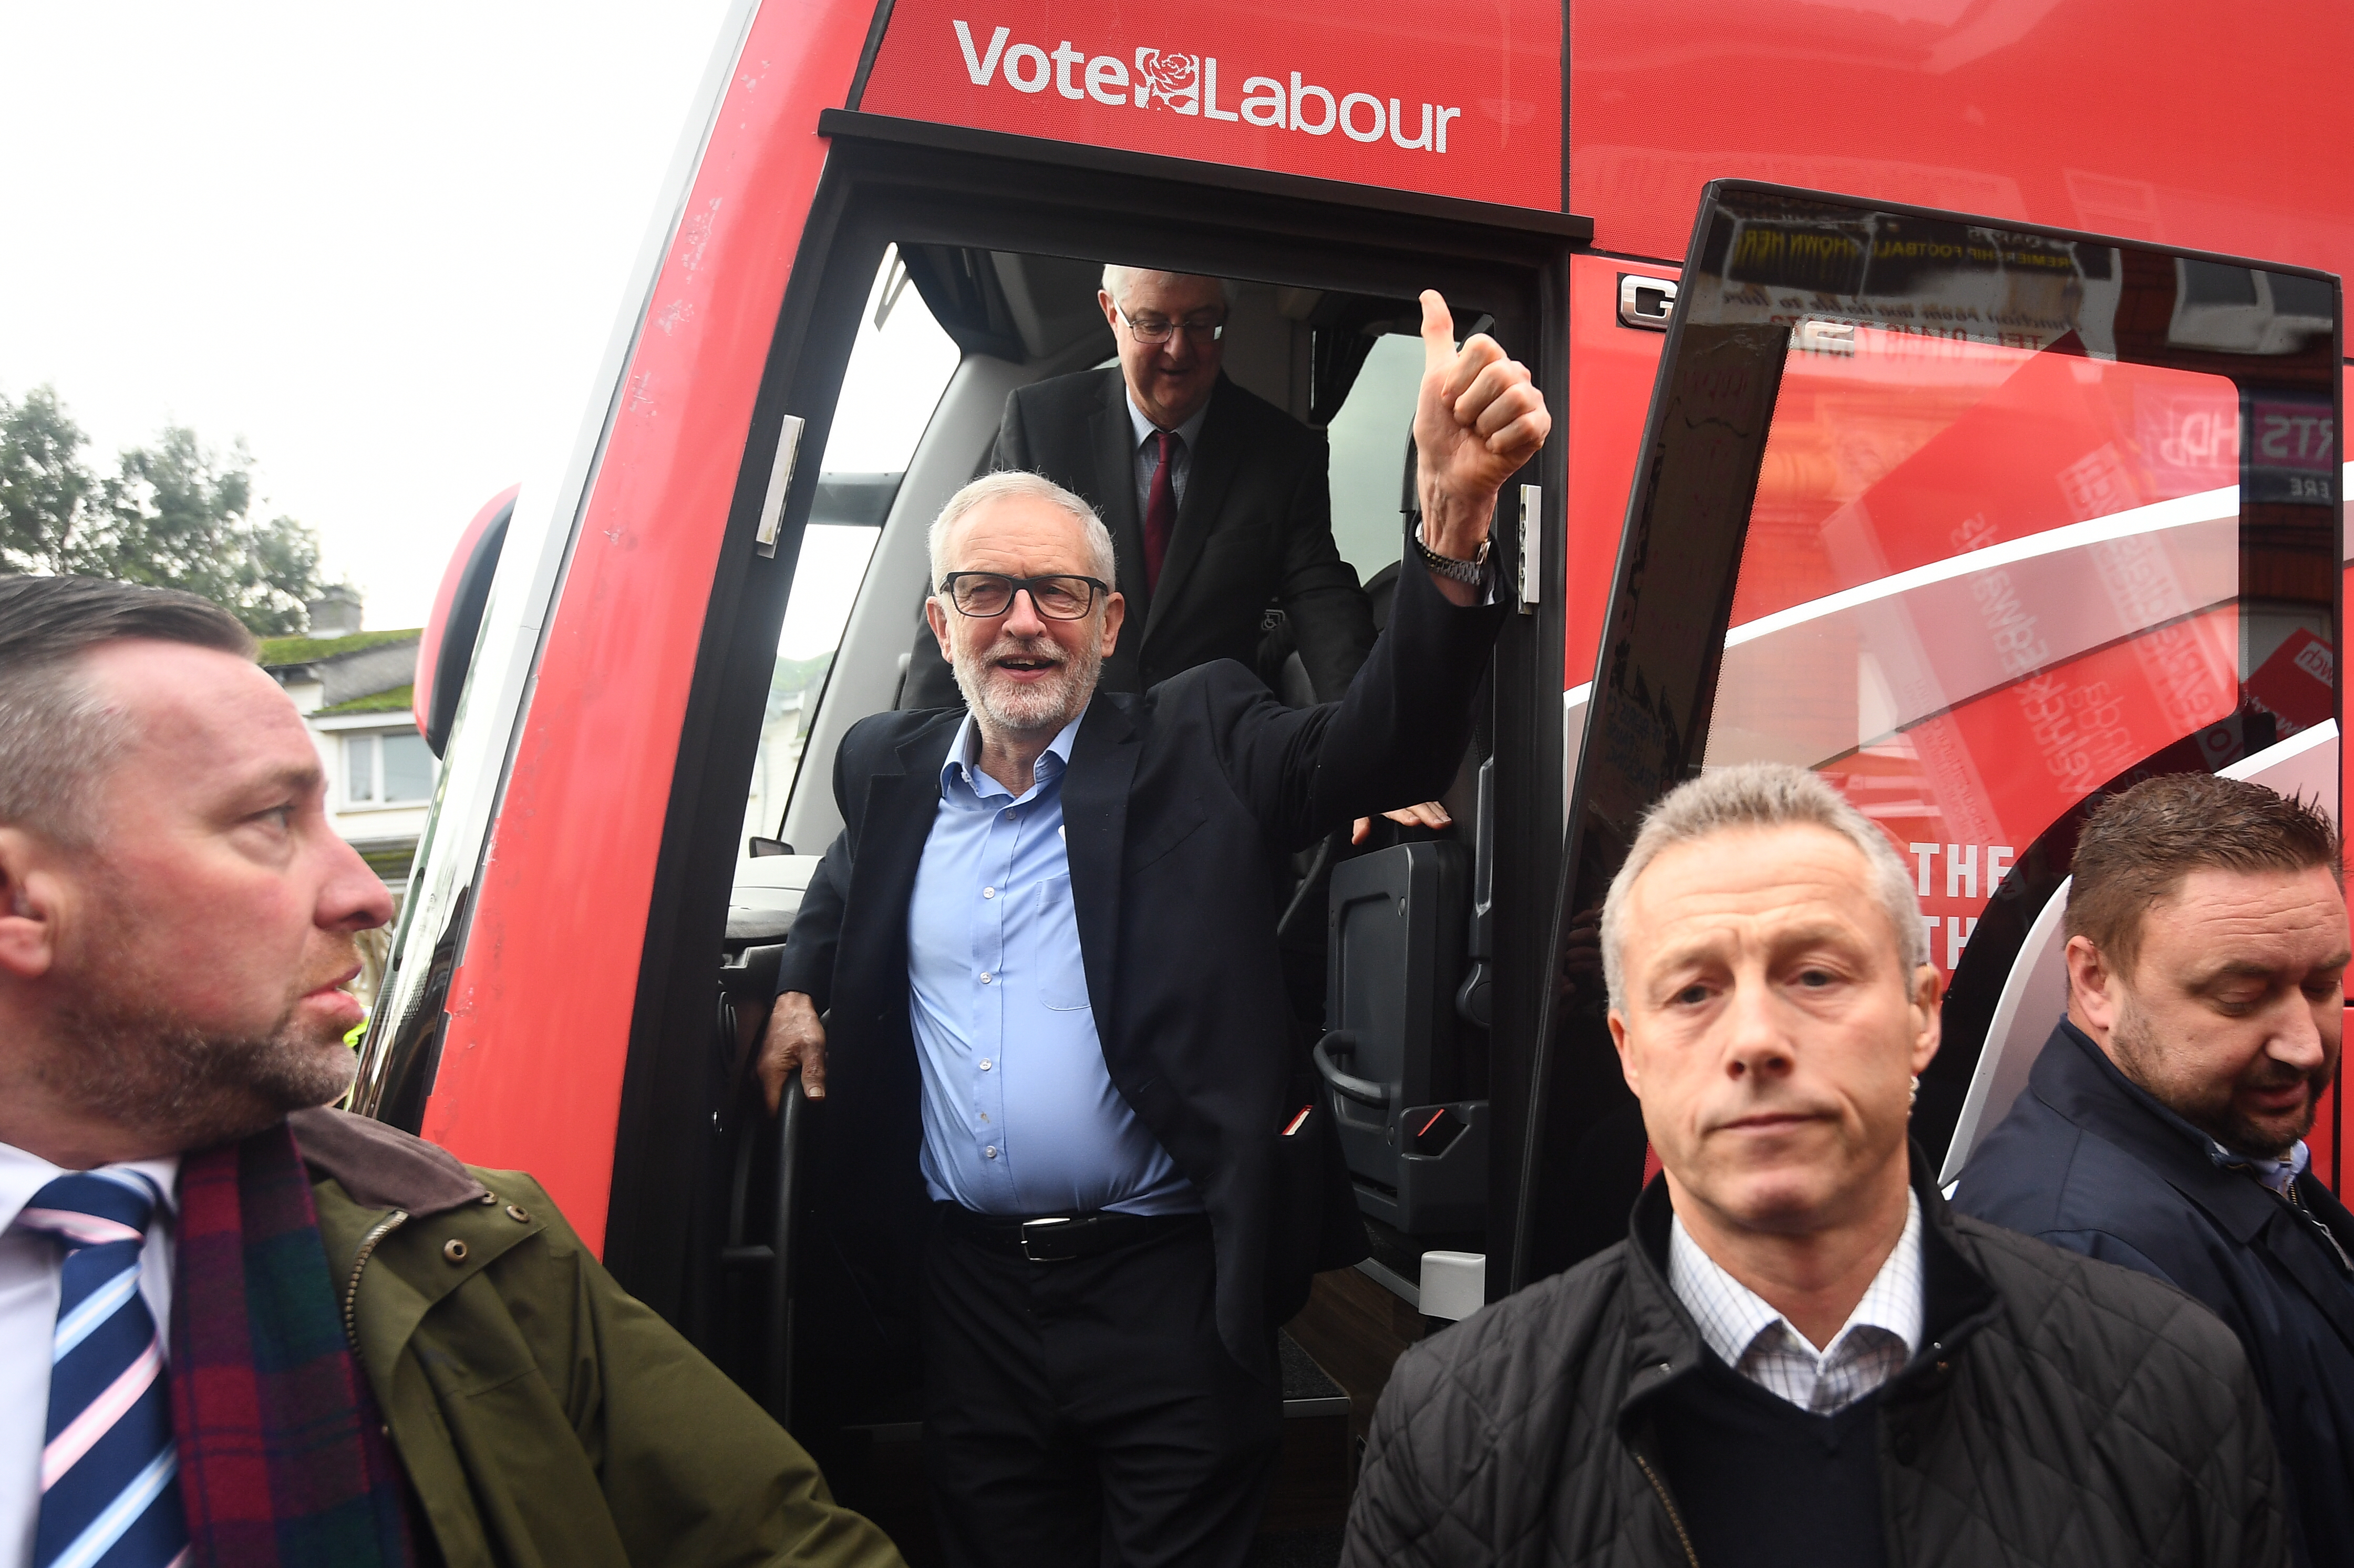 Labour Party leader Jeremy Corbyn and Welsh Labour leader Mark Drakeford (back) arriving in Swansea, while on the General Election campaign trail in Wales.